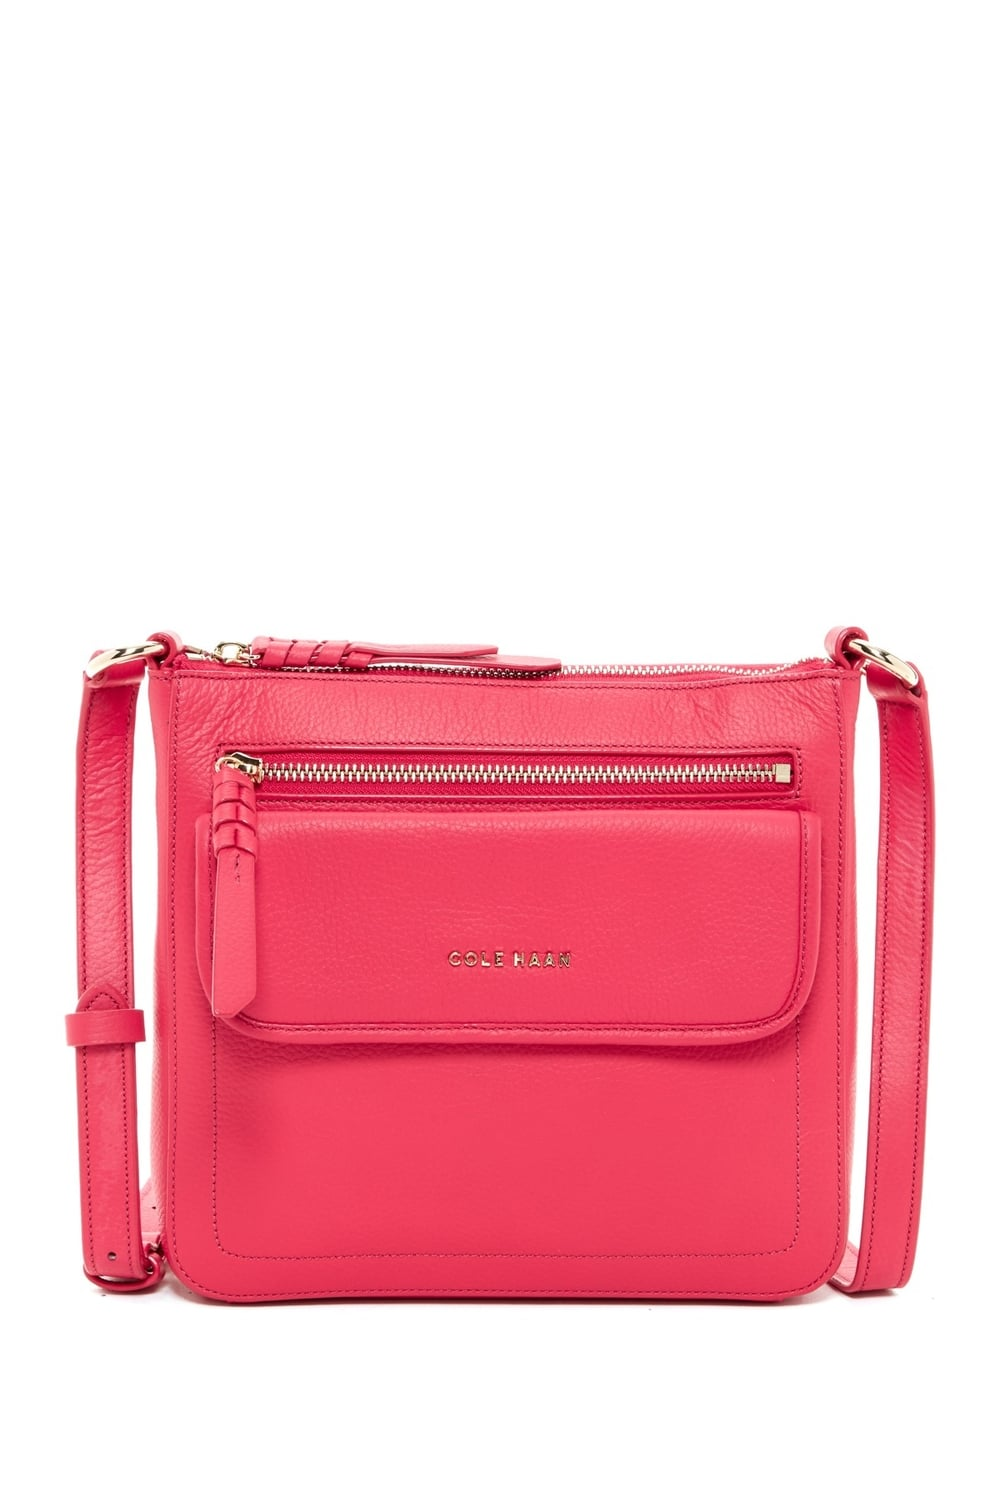 Cole Haan Amherst Cross Body Bag. Available in multiple colors. Nordstrom Rack. Was: $198 Now: $98.